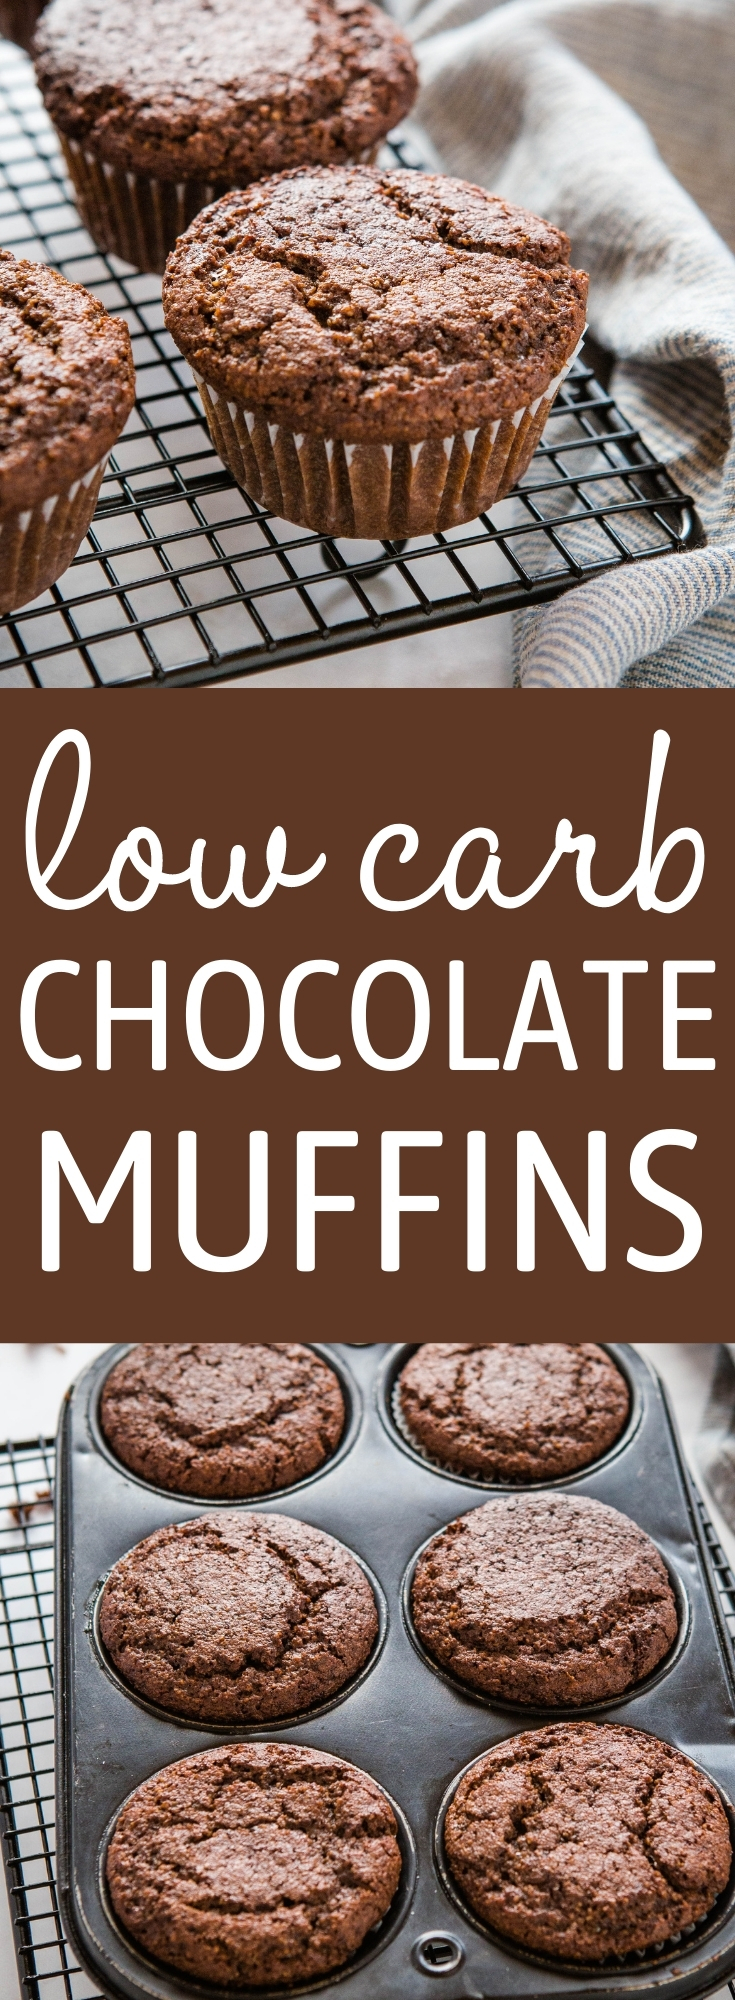 These Keto Chocolate Muffins are fluffy and sweet, with a classic chocolate muffin texture - gluten-free, sugar-free, and only 9 grams of net carbs per muffin! Recipe from thebusybaker.ca! #recipe #keto #ketomuffins #ketobaking #chocolate #muffins #lowcarb #chocolatechip via @busybakerblog